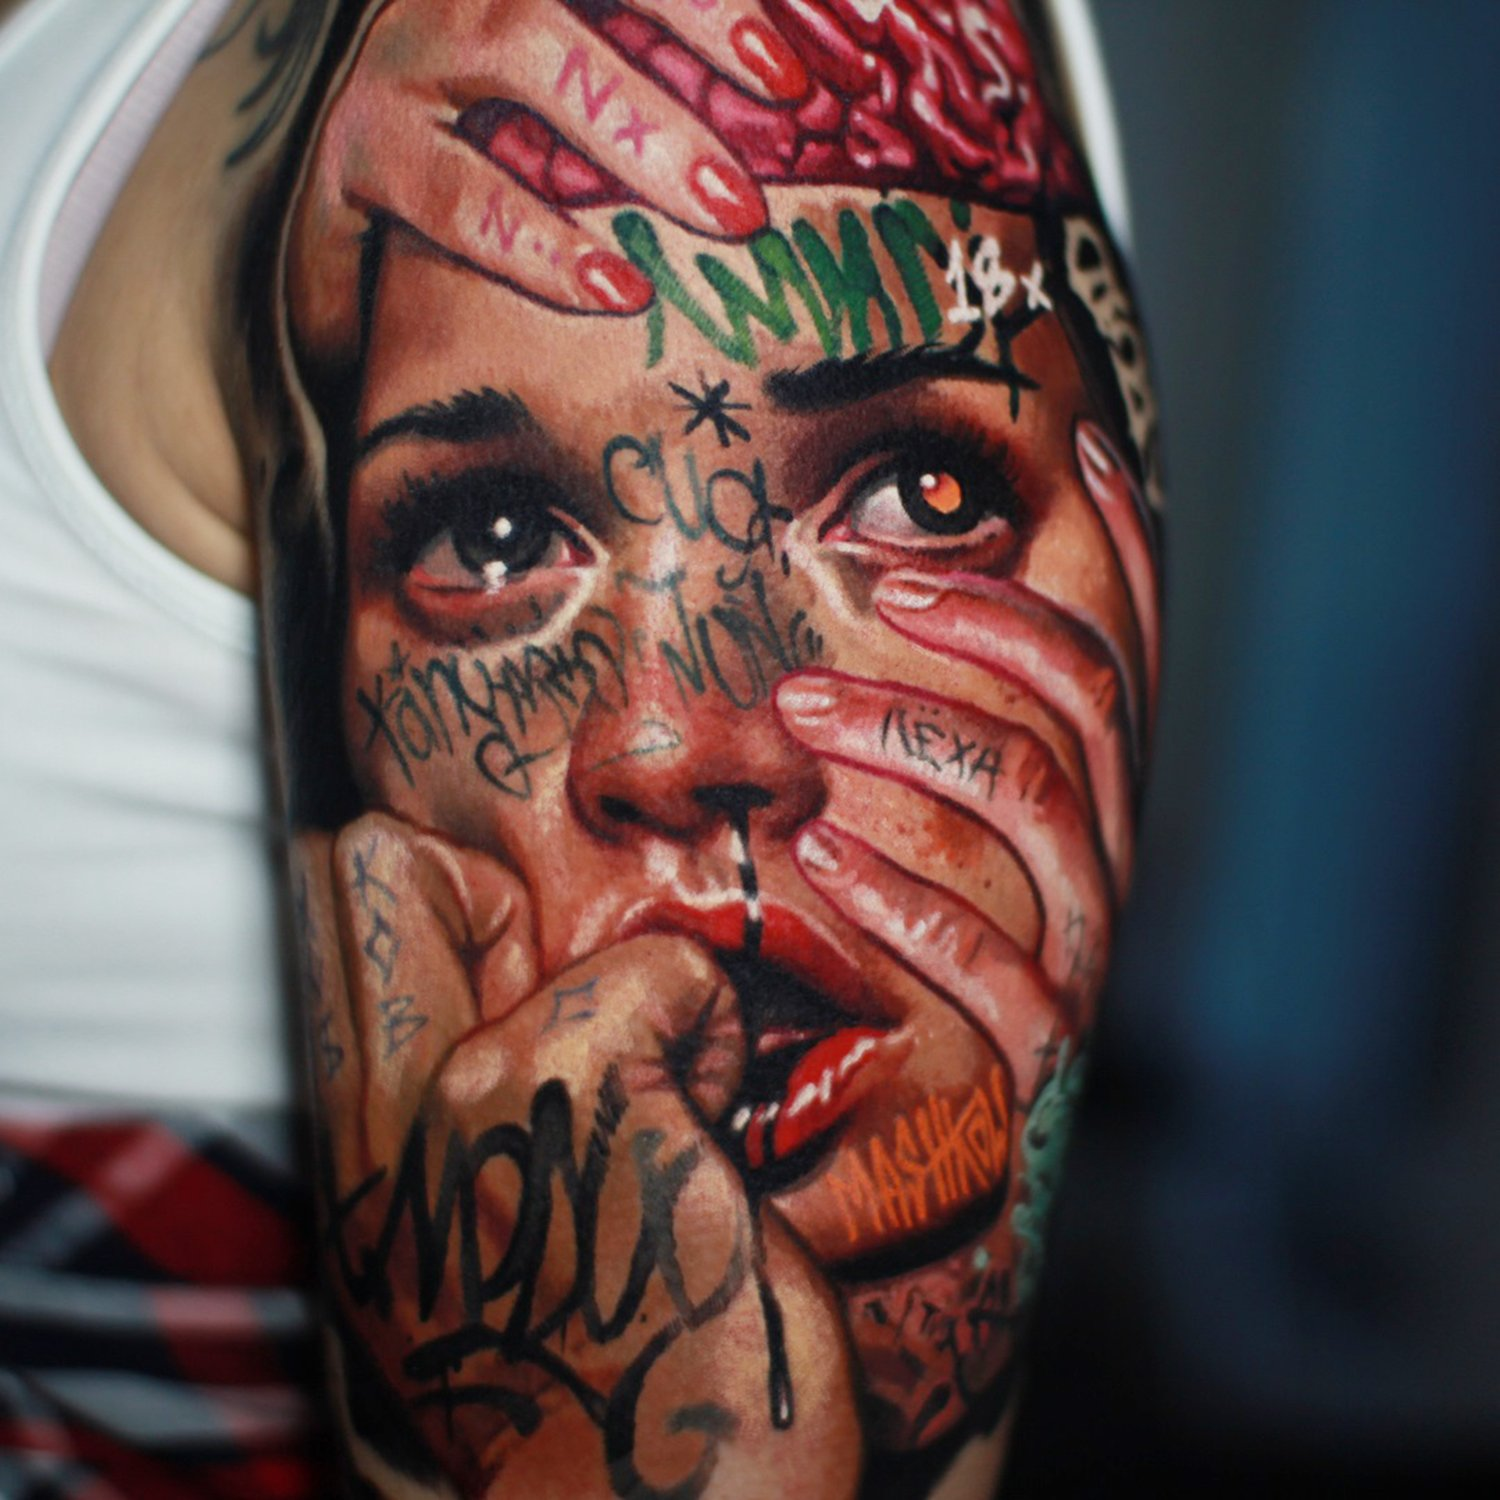 closeup of tattoo, crying girl with graf face